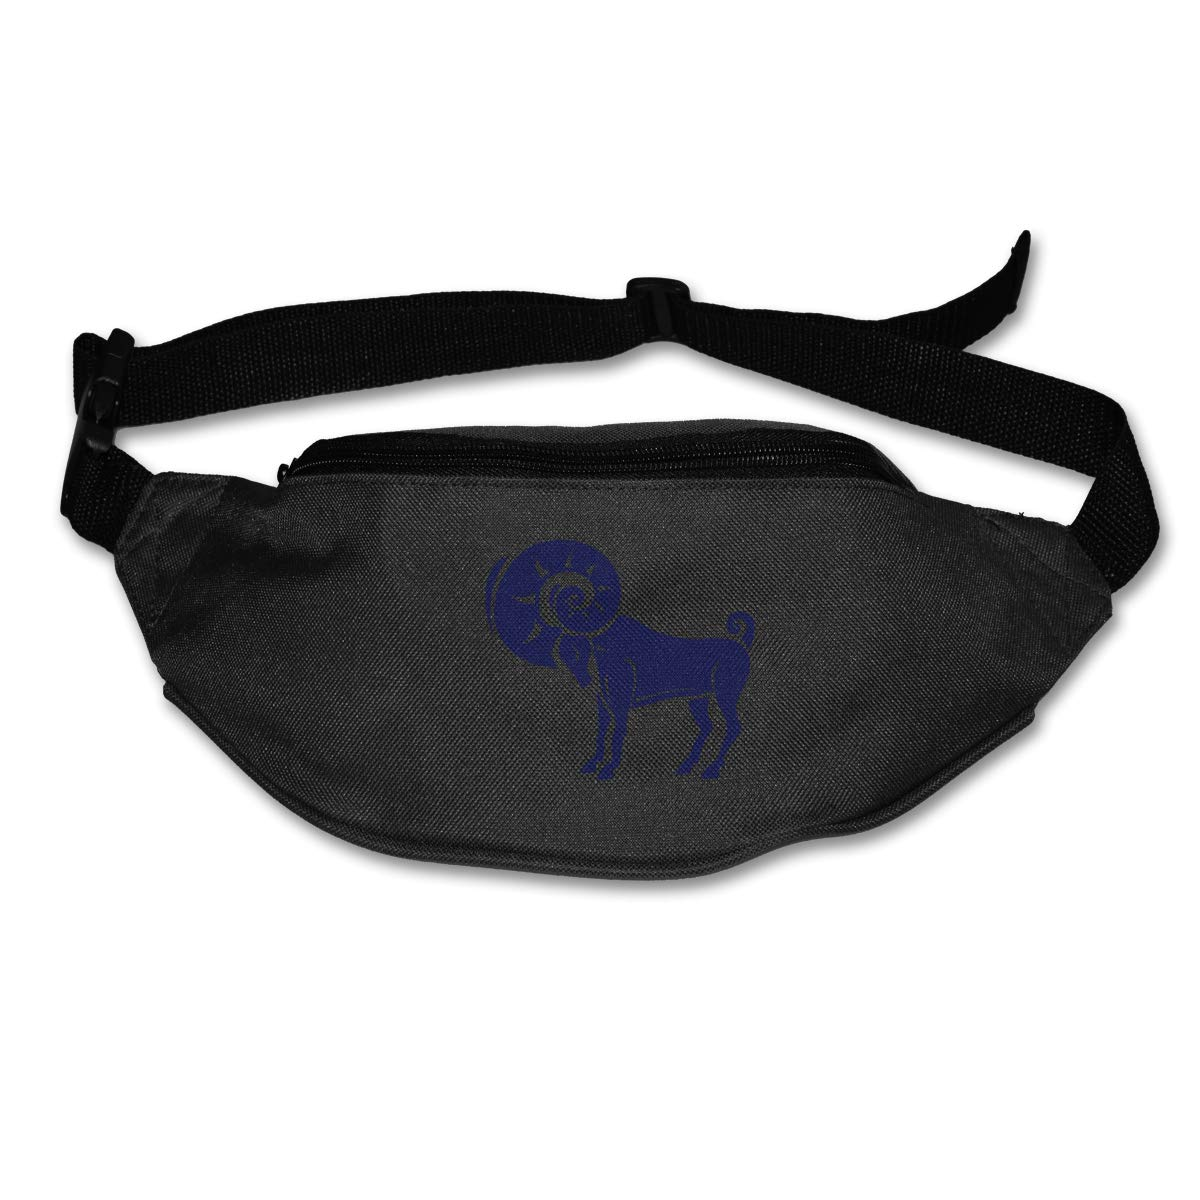 Navy Aries Sport Waist Packs Fanny Pack Adjustable For Travel